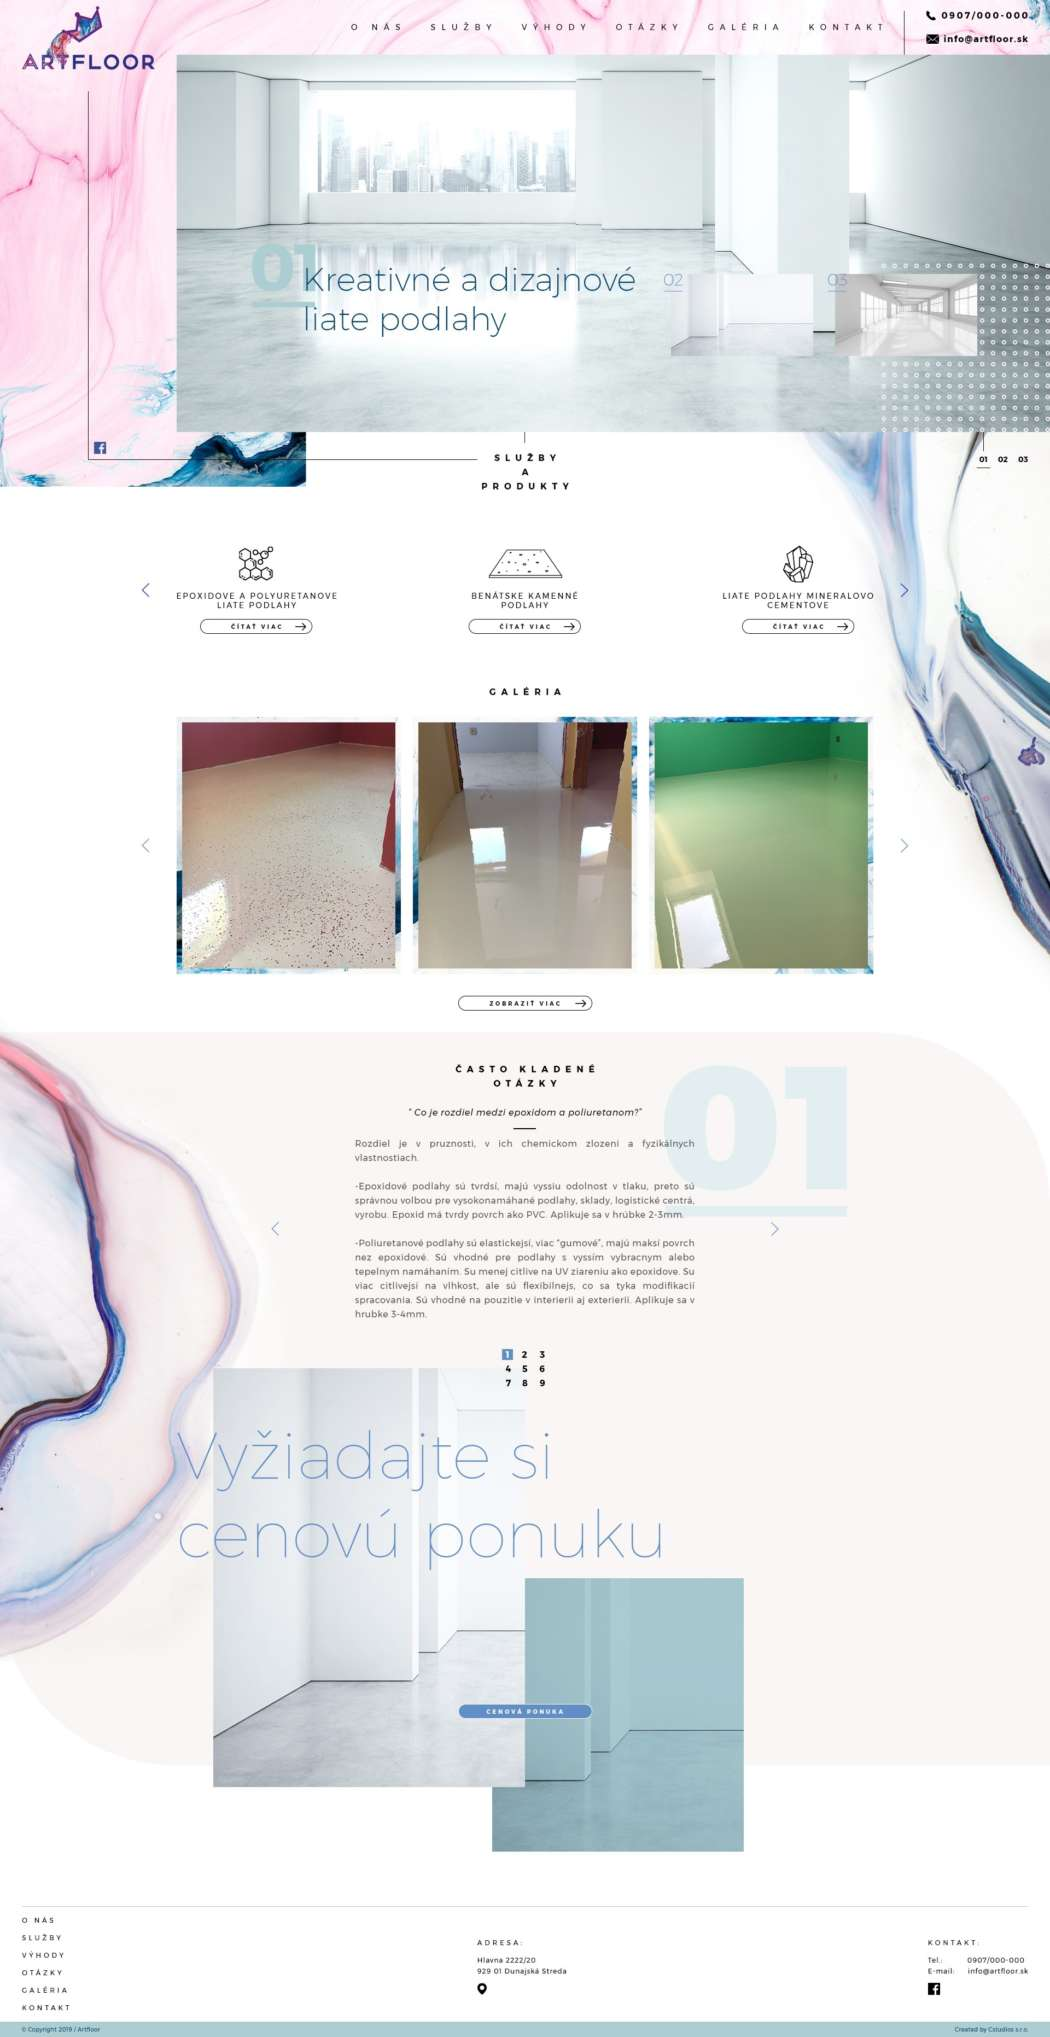 Artfloor - webdesign | Grafikerik